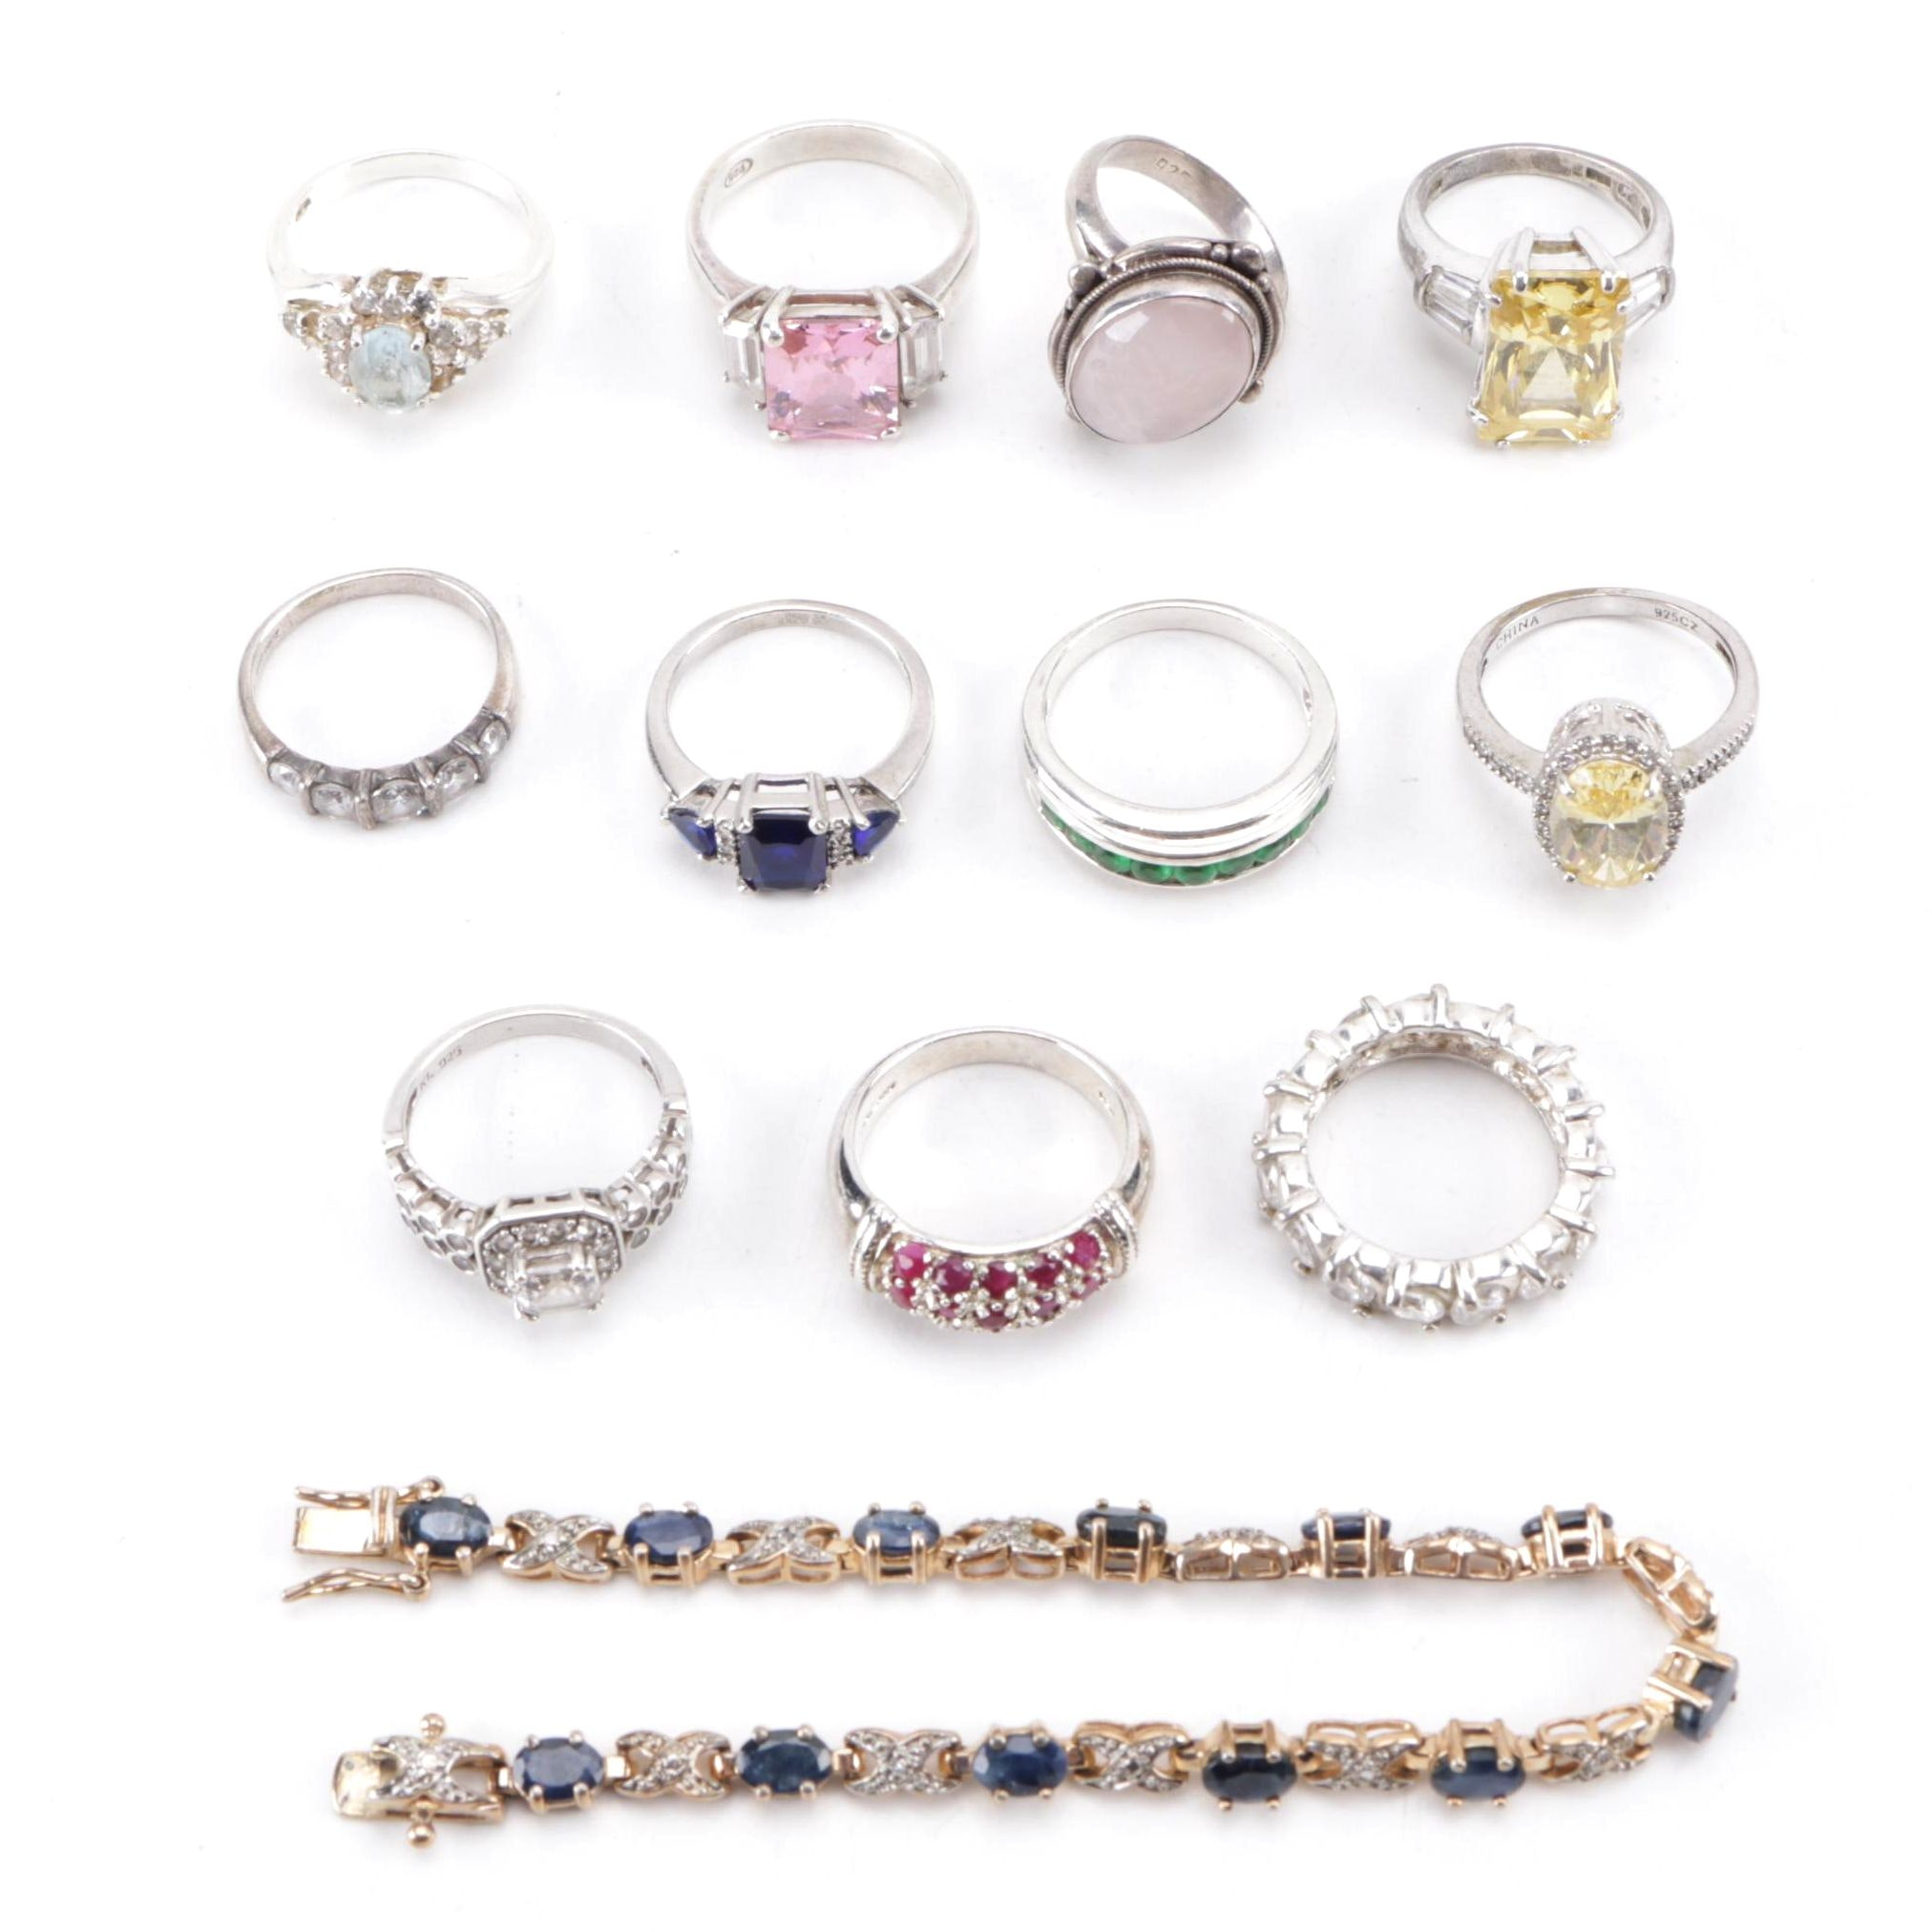 Sterling Silver and Gemstone Rings and Bracelet